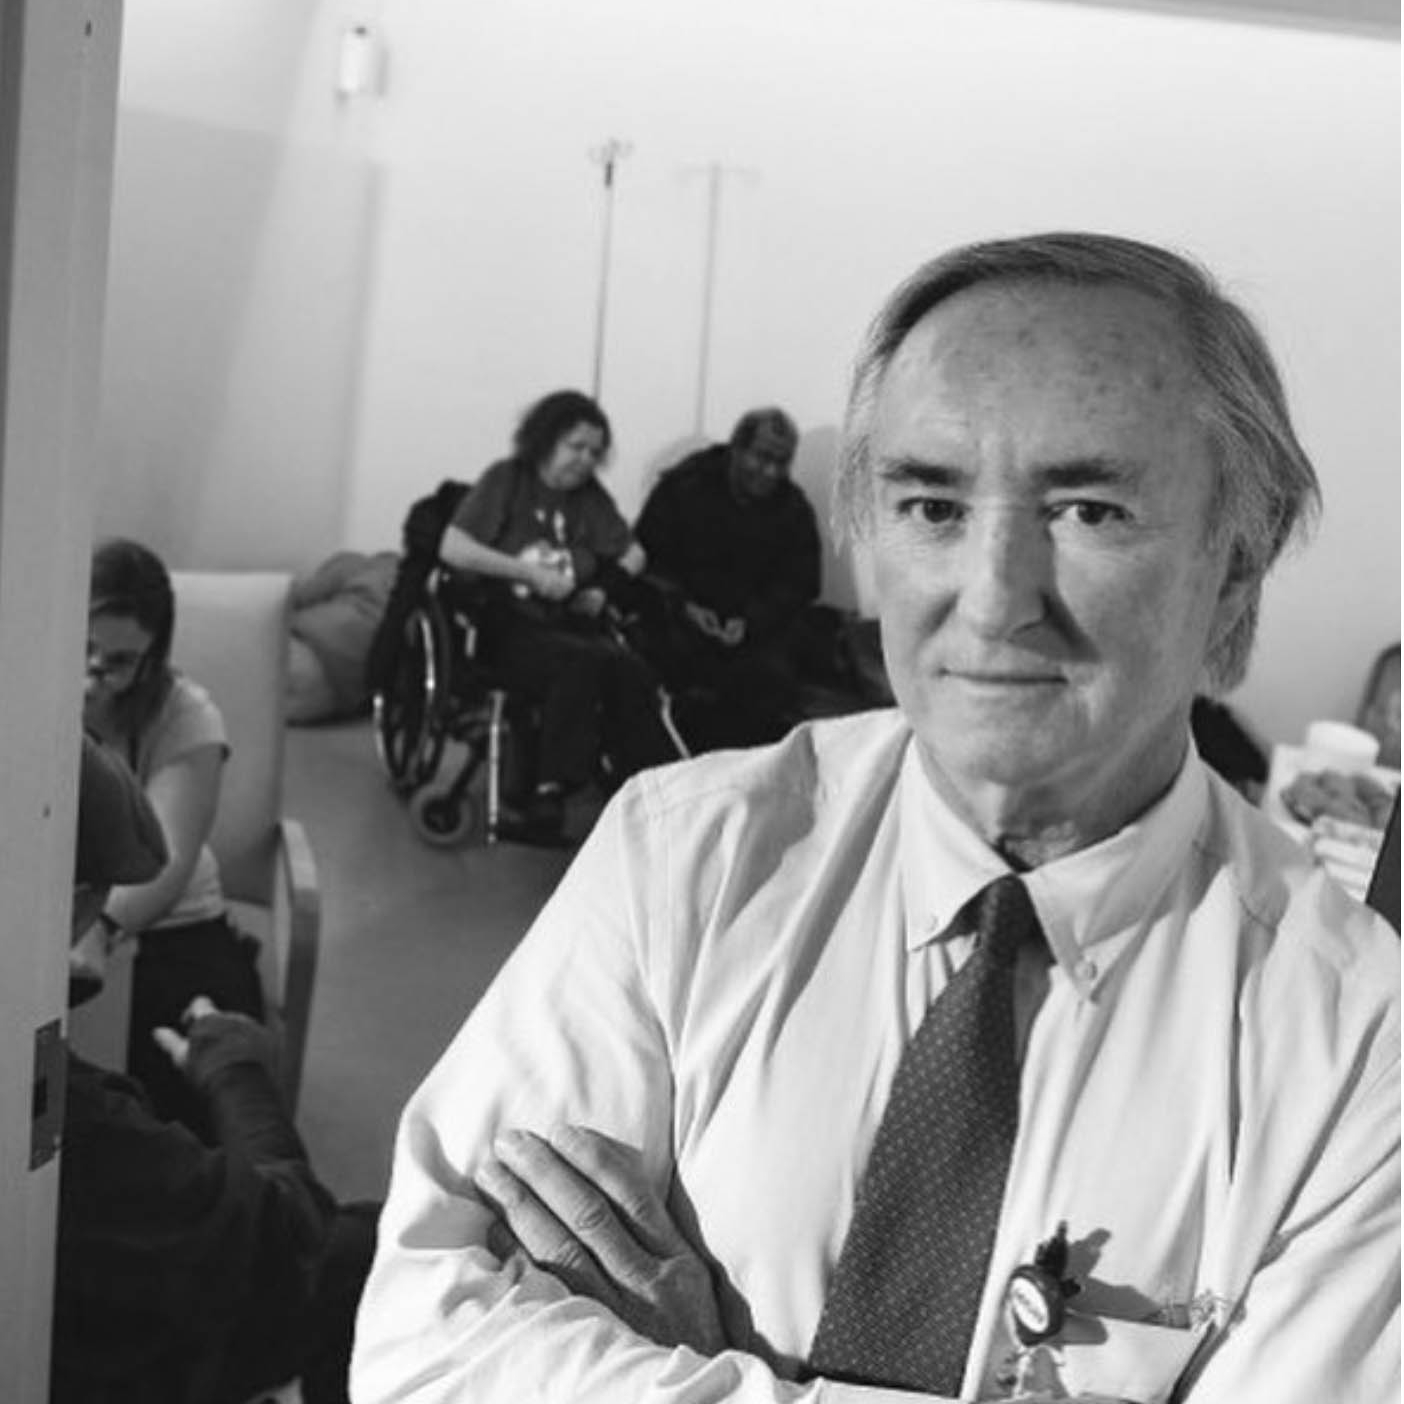 Jim O'Connell, M.D. - Founder and President of the Boston Health Care for the Homeless Program | Author of Stories from the Shadows: Reflections of a Street Doctor